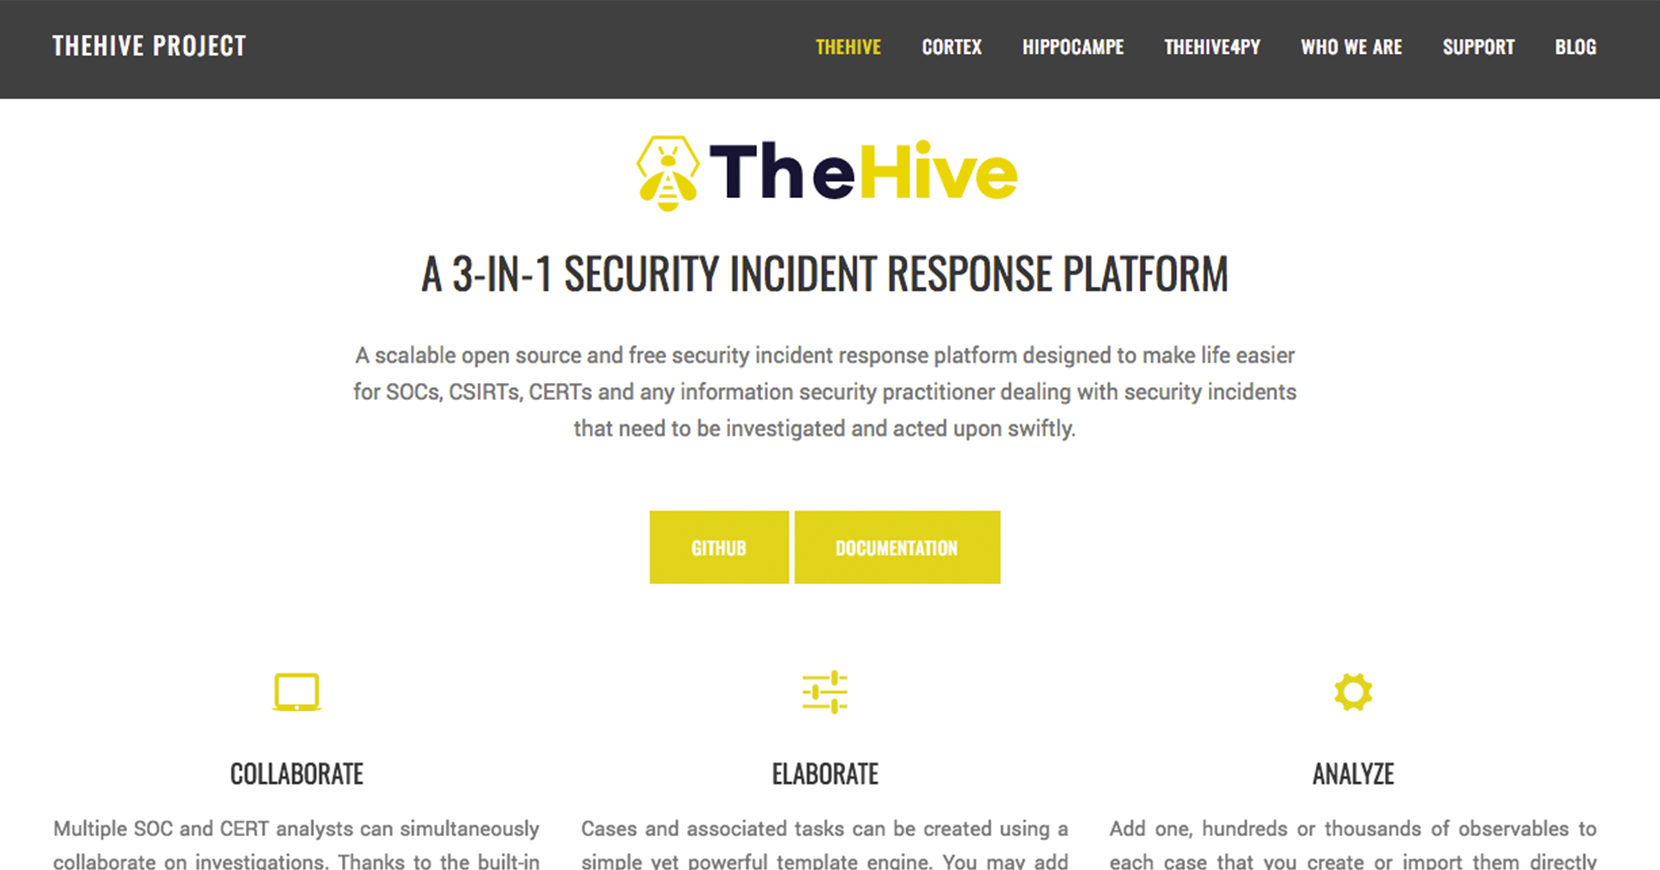 TheHive Project